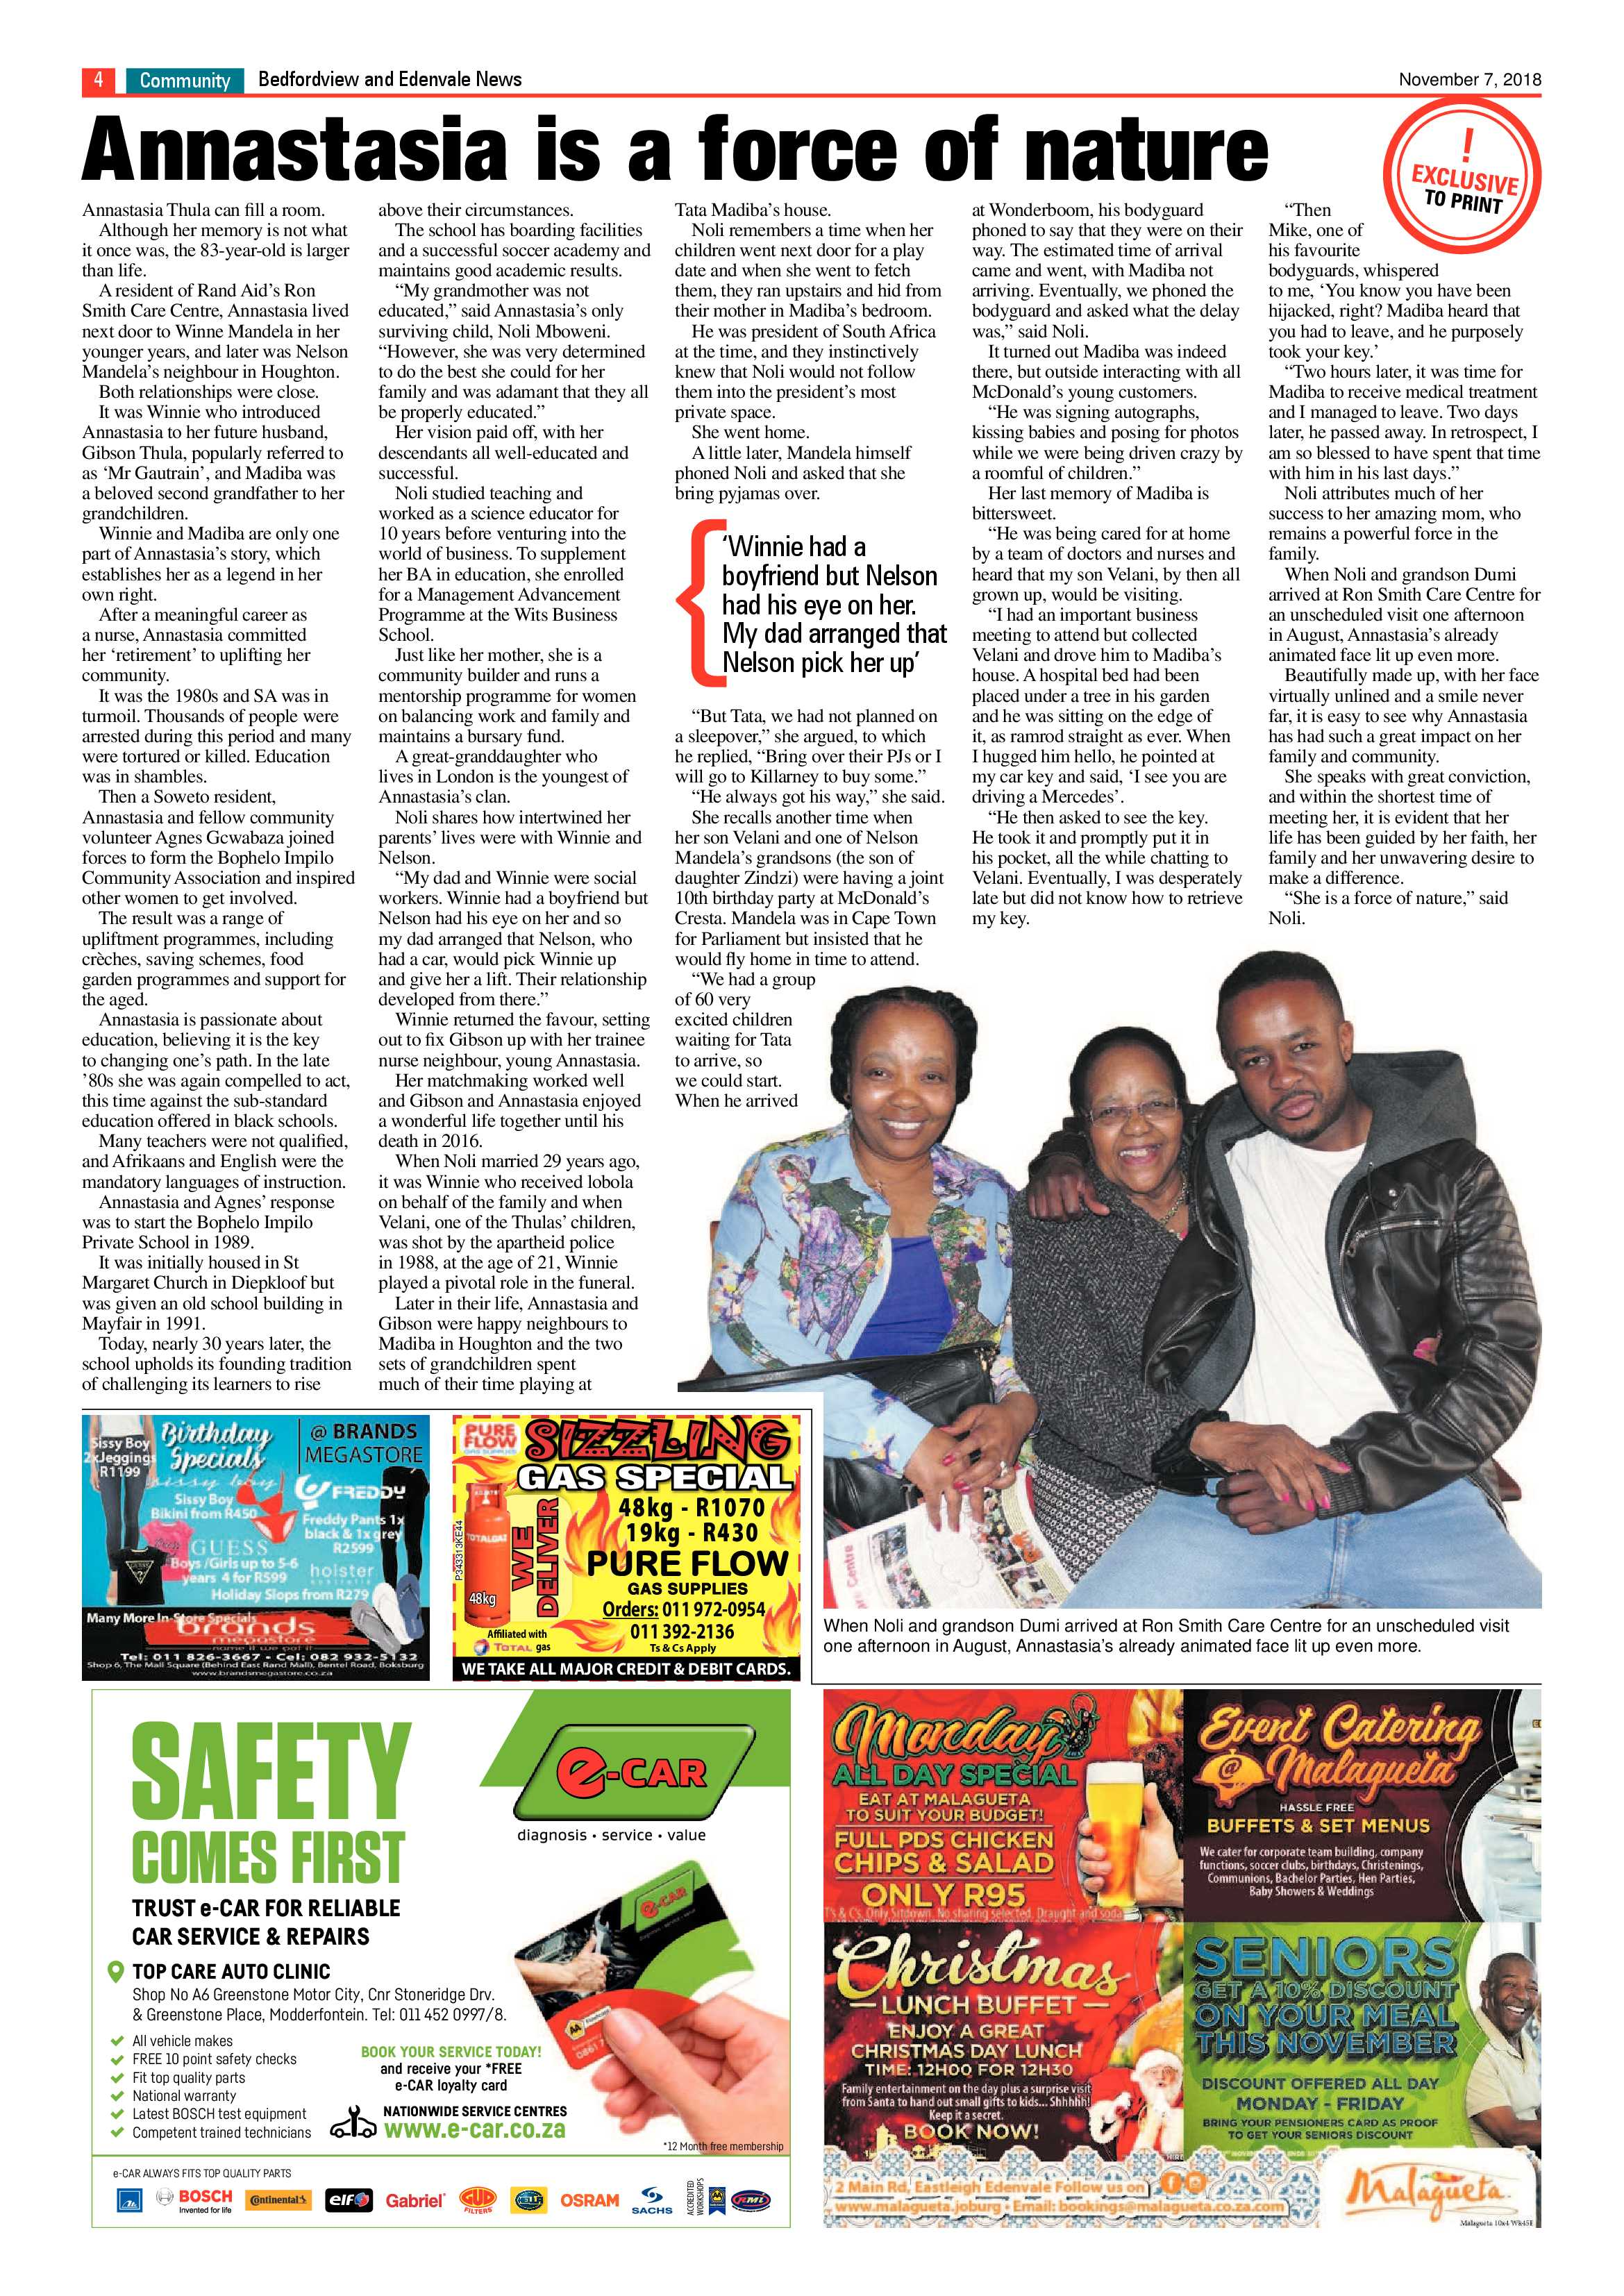 bedfordview-edenvale-news-07-november-2018-epapers-page-4